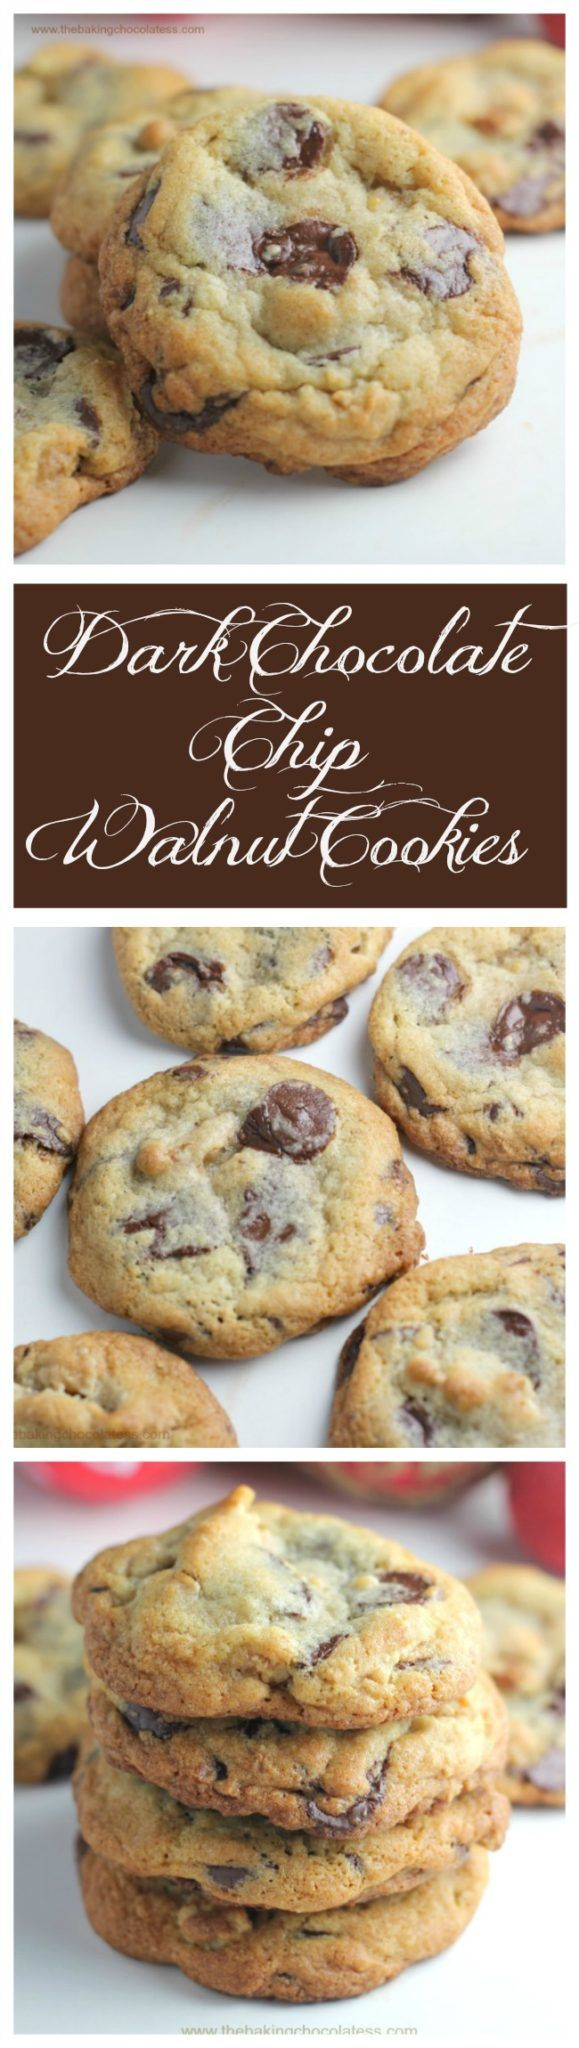 Ultimate Dark Chocolate Chip Toffee Walnut Cookies via @https://www.pinterest.com/BaknChocolaTess/